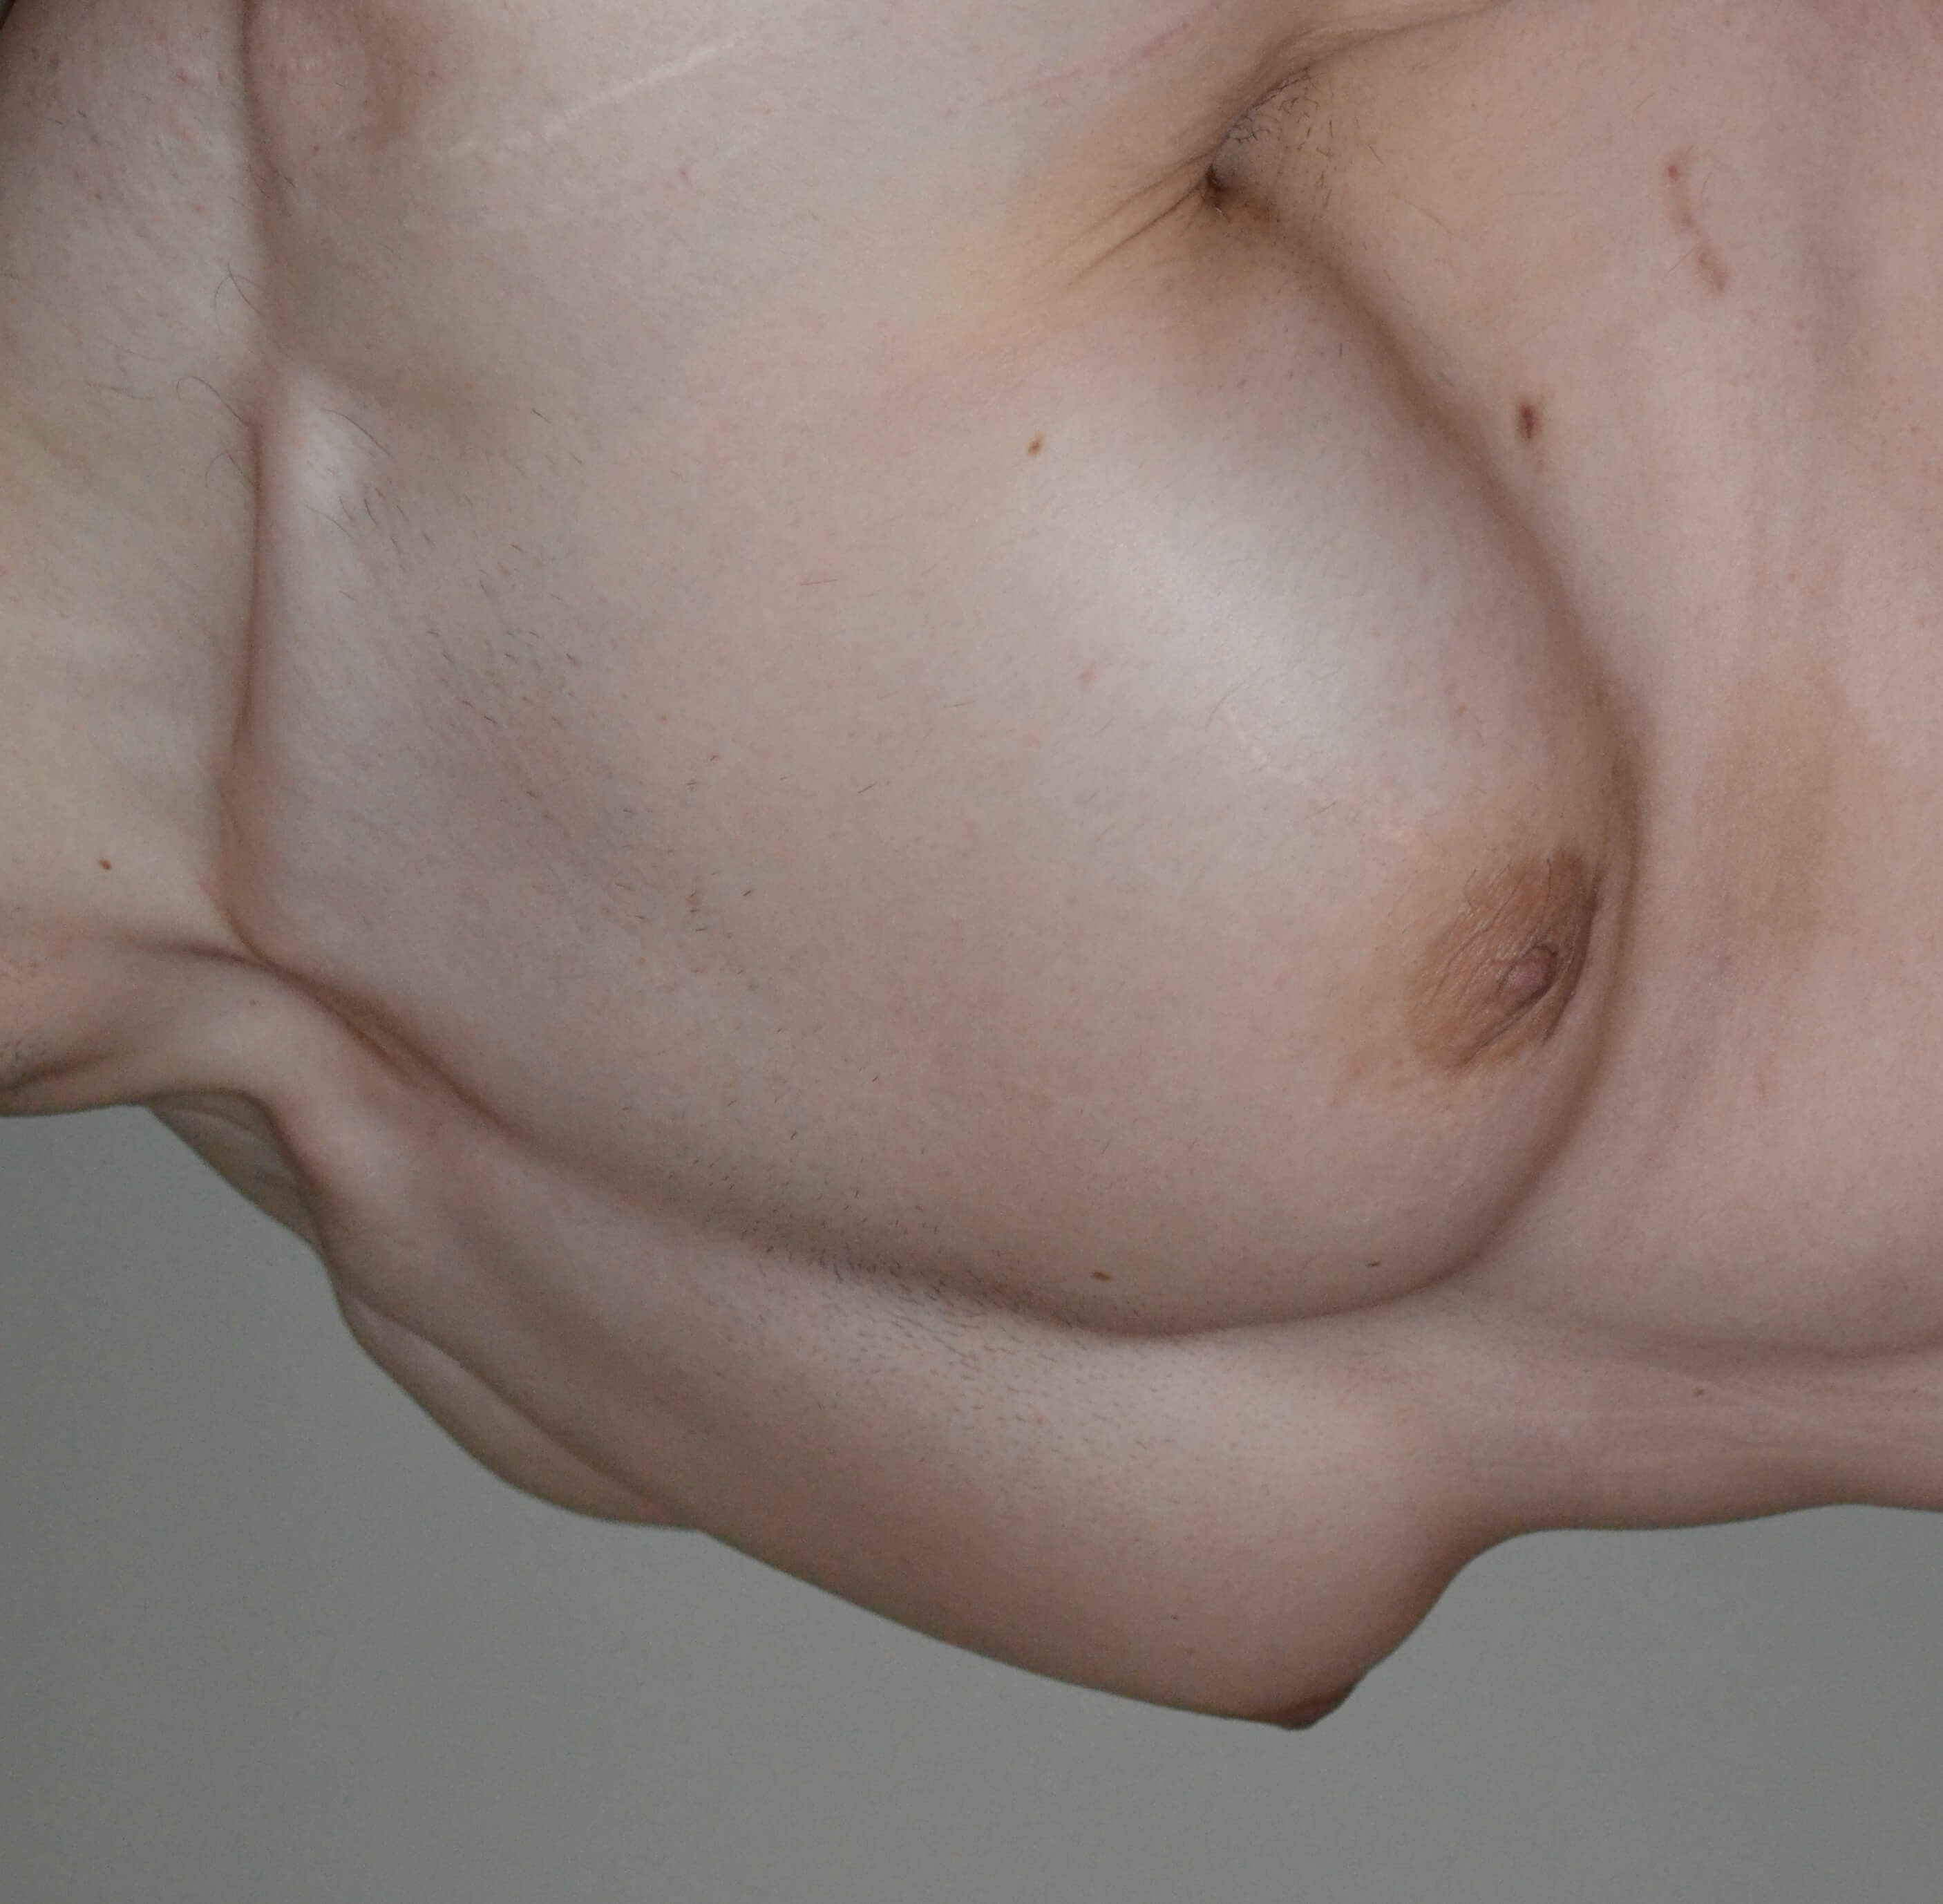 Gynecomastia Reduction After, 3/4 frontal view